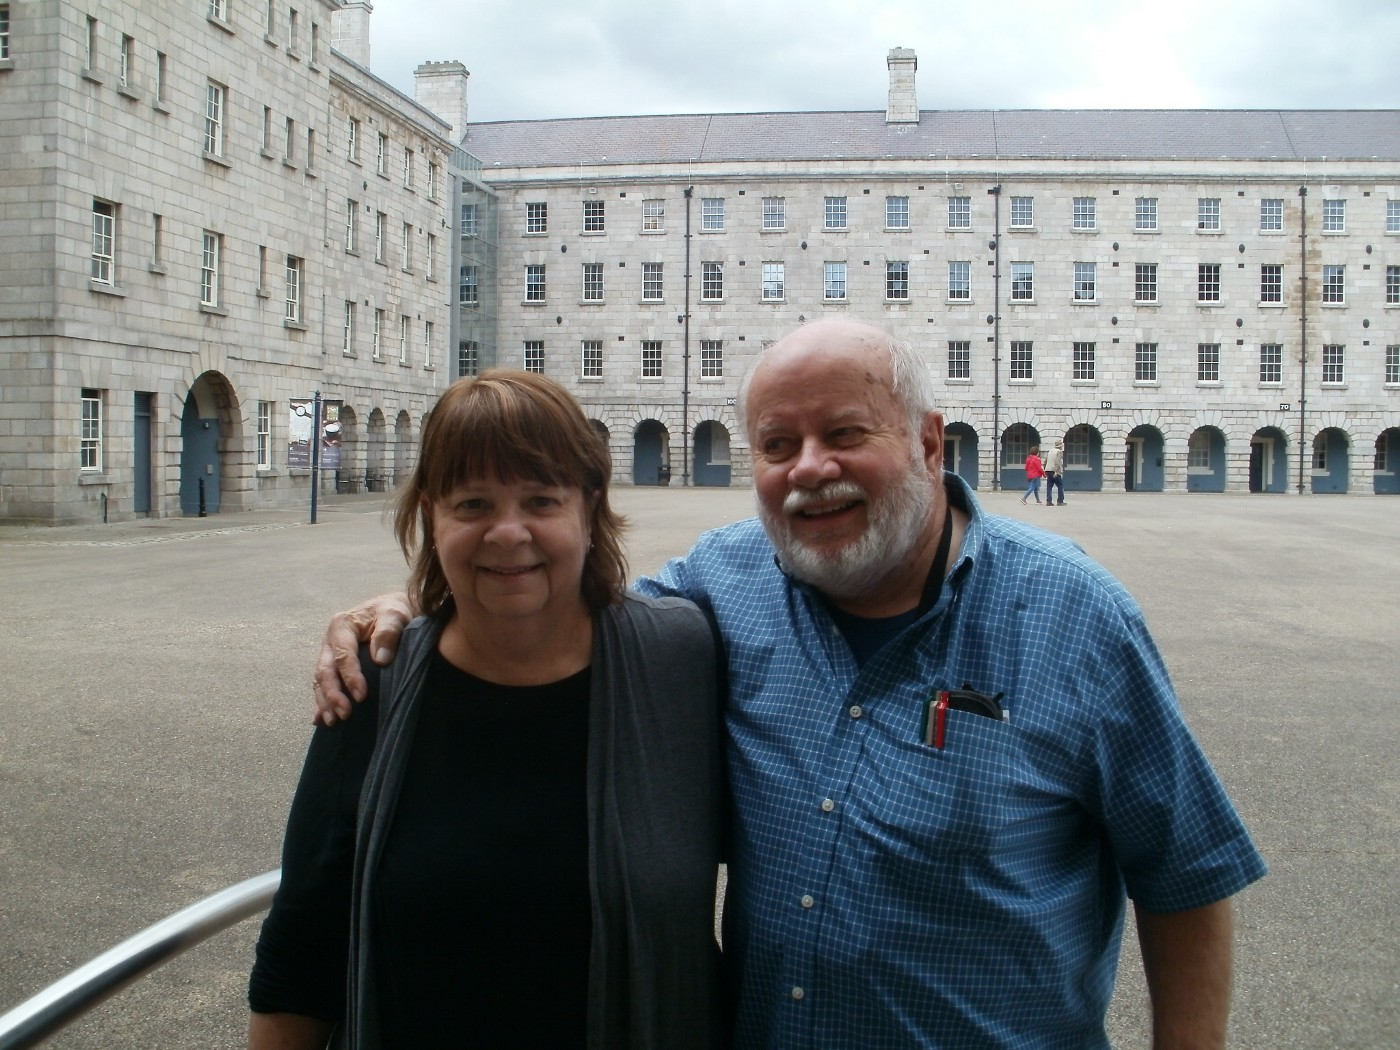 Carolyn Wilhelm, author and publisher, with her husband Gary Wilhelm at a Dublin museum. Photo: Clare O'Beara.